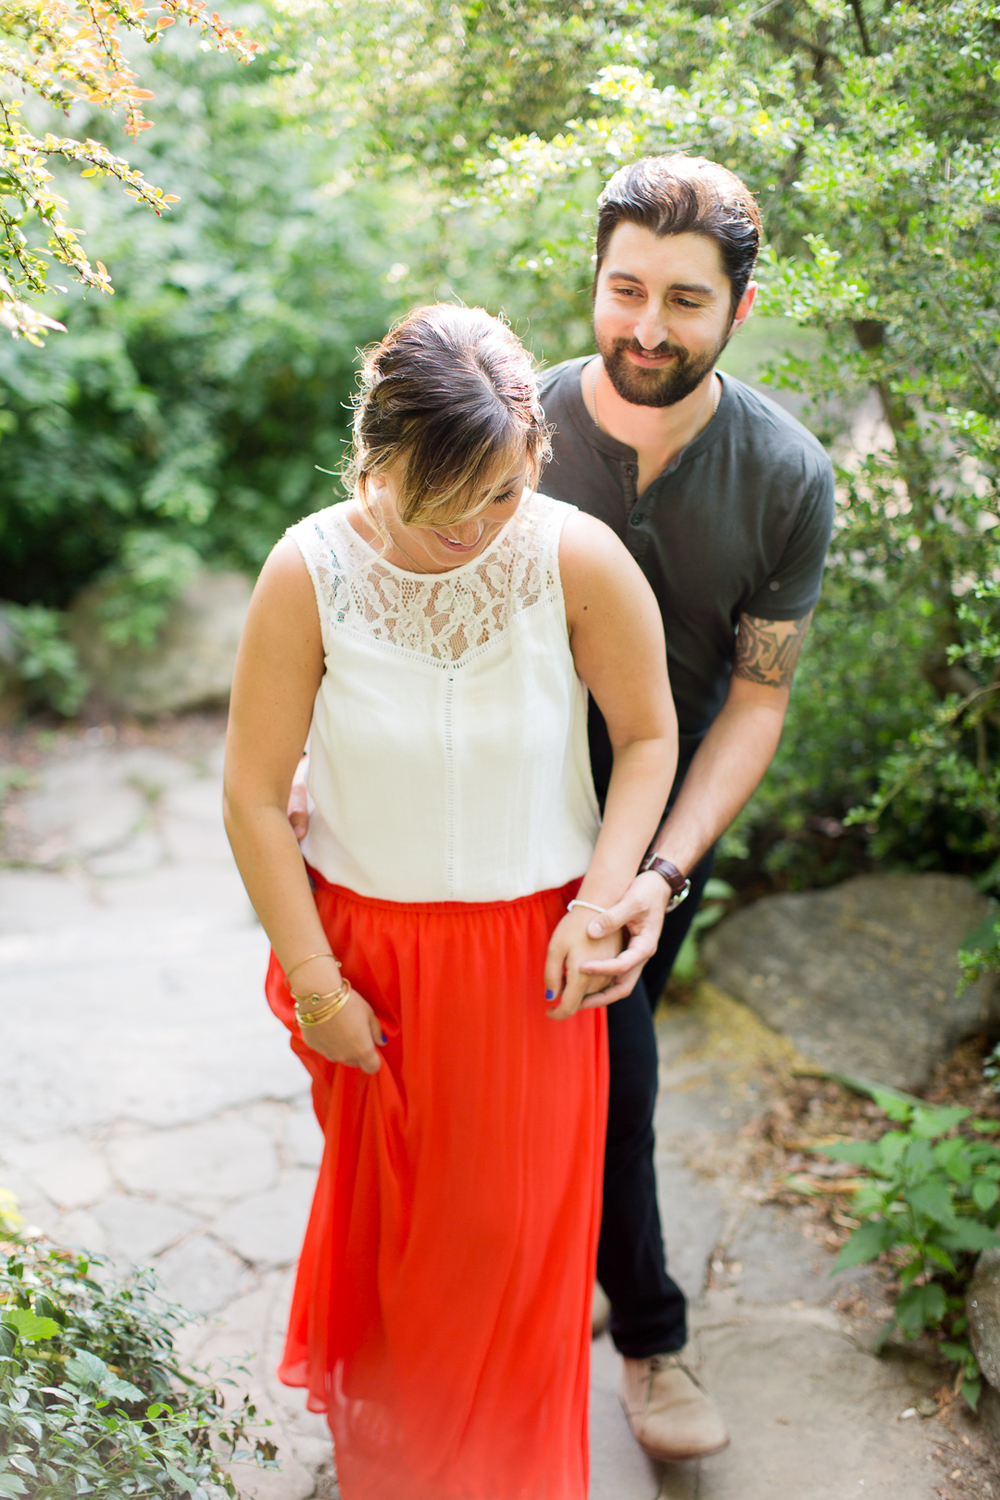 Melissa Kruse Photography - Eileen & Kenny Engagement Photos-52.jpg